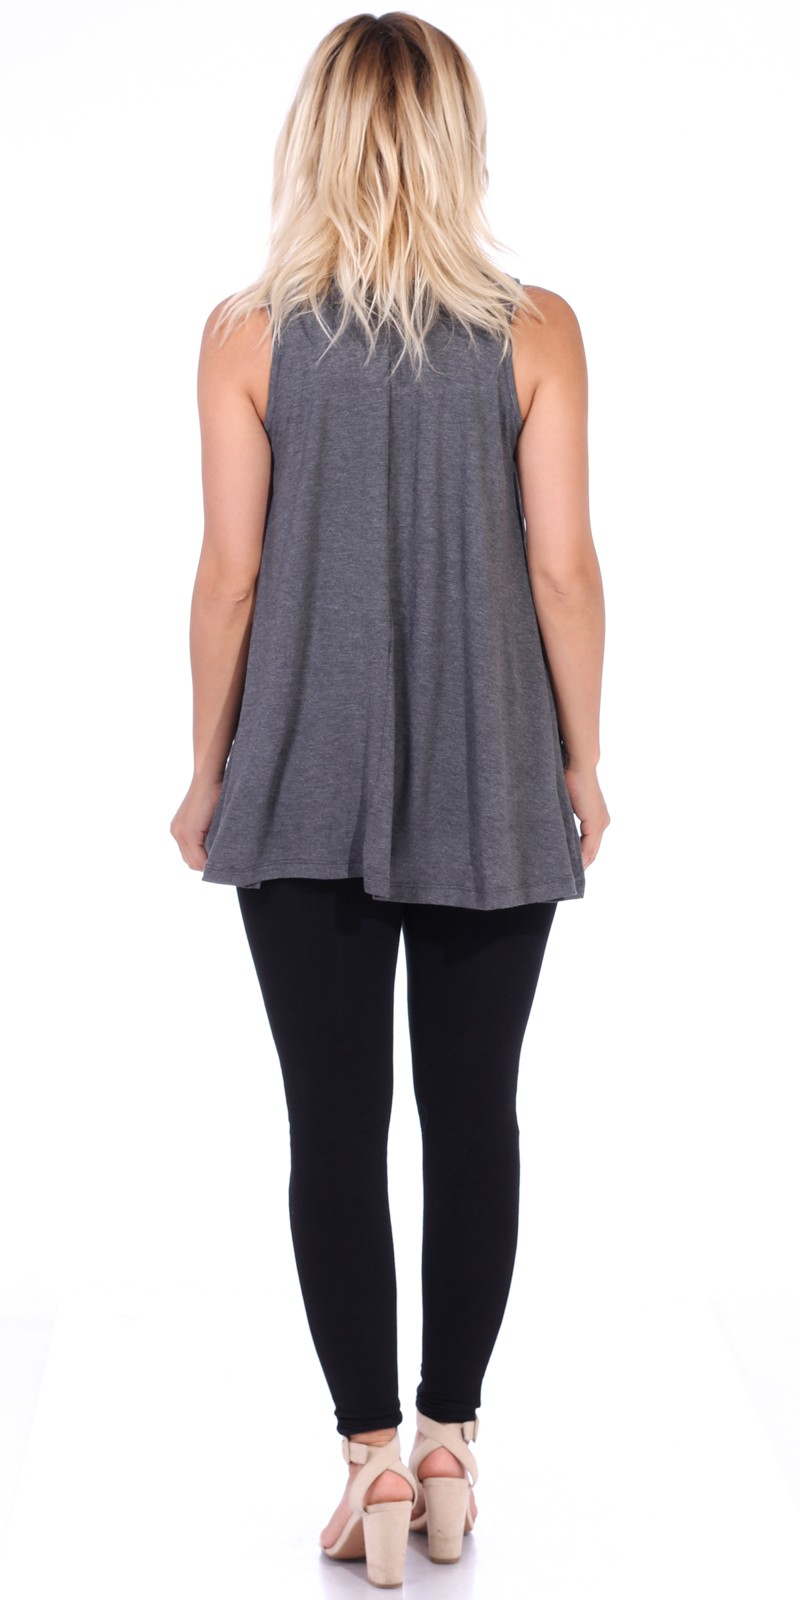 Imported A Wonderful Loose Fit Rayon Top to Match with Leggings Dolman Cut and Finish Premium Rayon Fabric Makes for Amazing Comfort 95% RAYON 5% SPANDEX Model is Wearing a Small Measurements are 33B x 34 x 36 and height is 5' 8